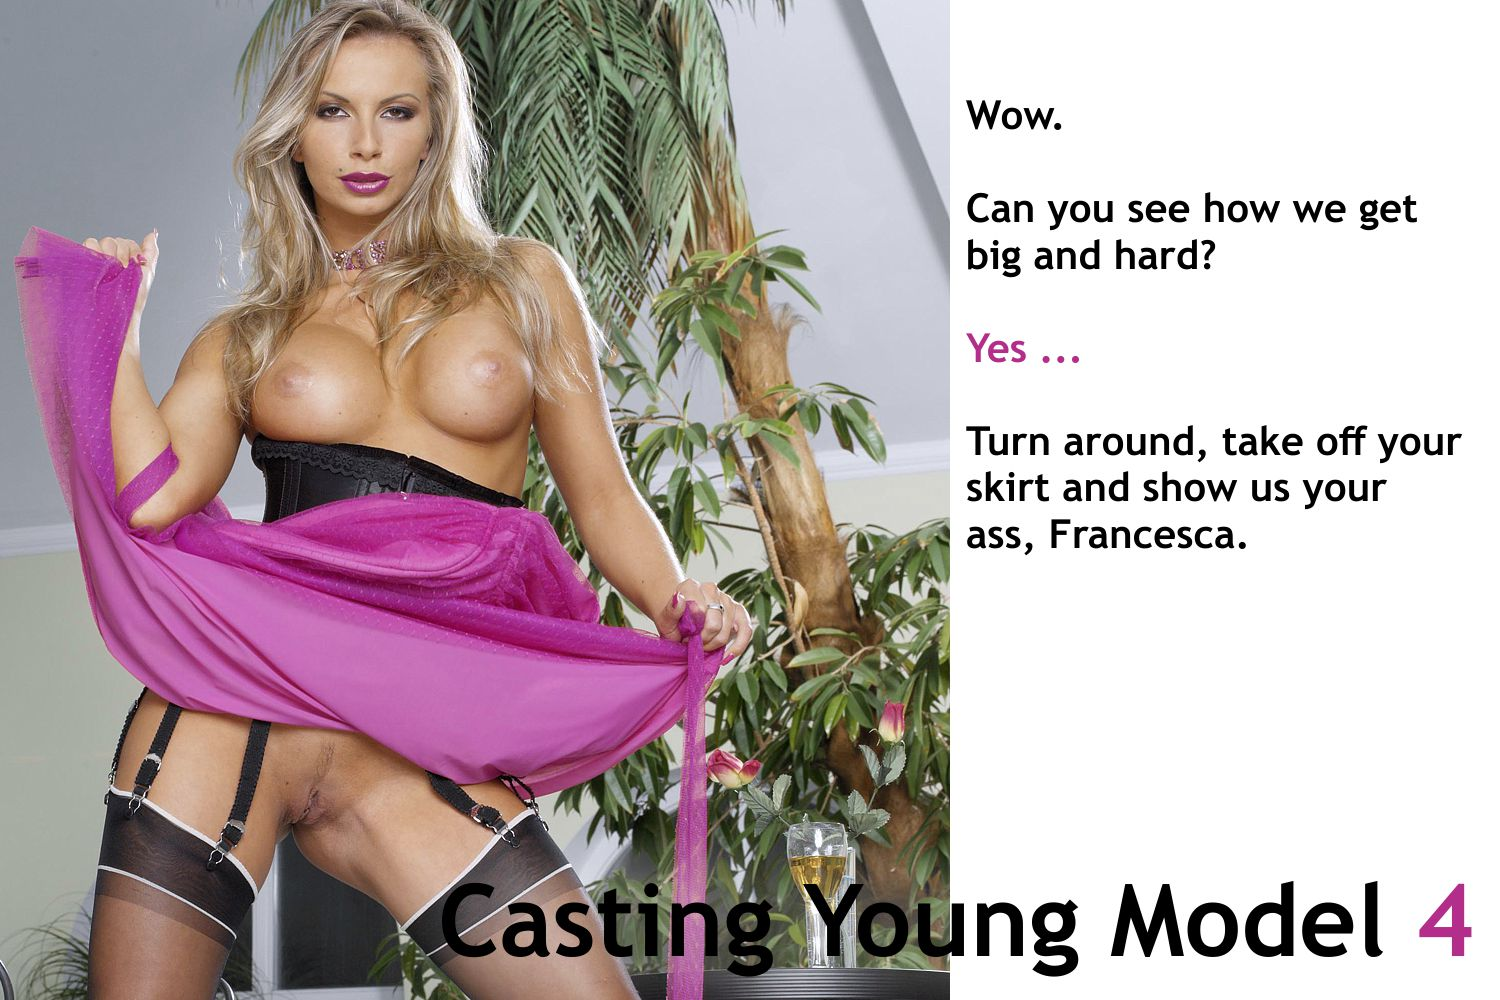 casting_young_model_4_006